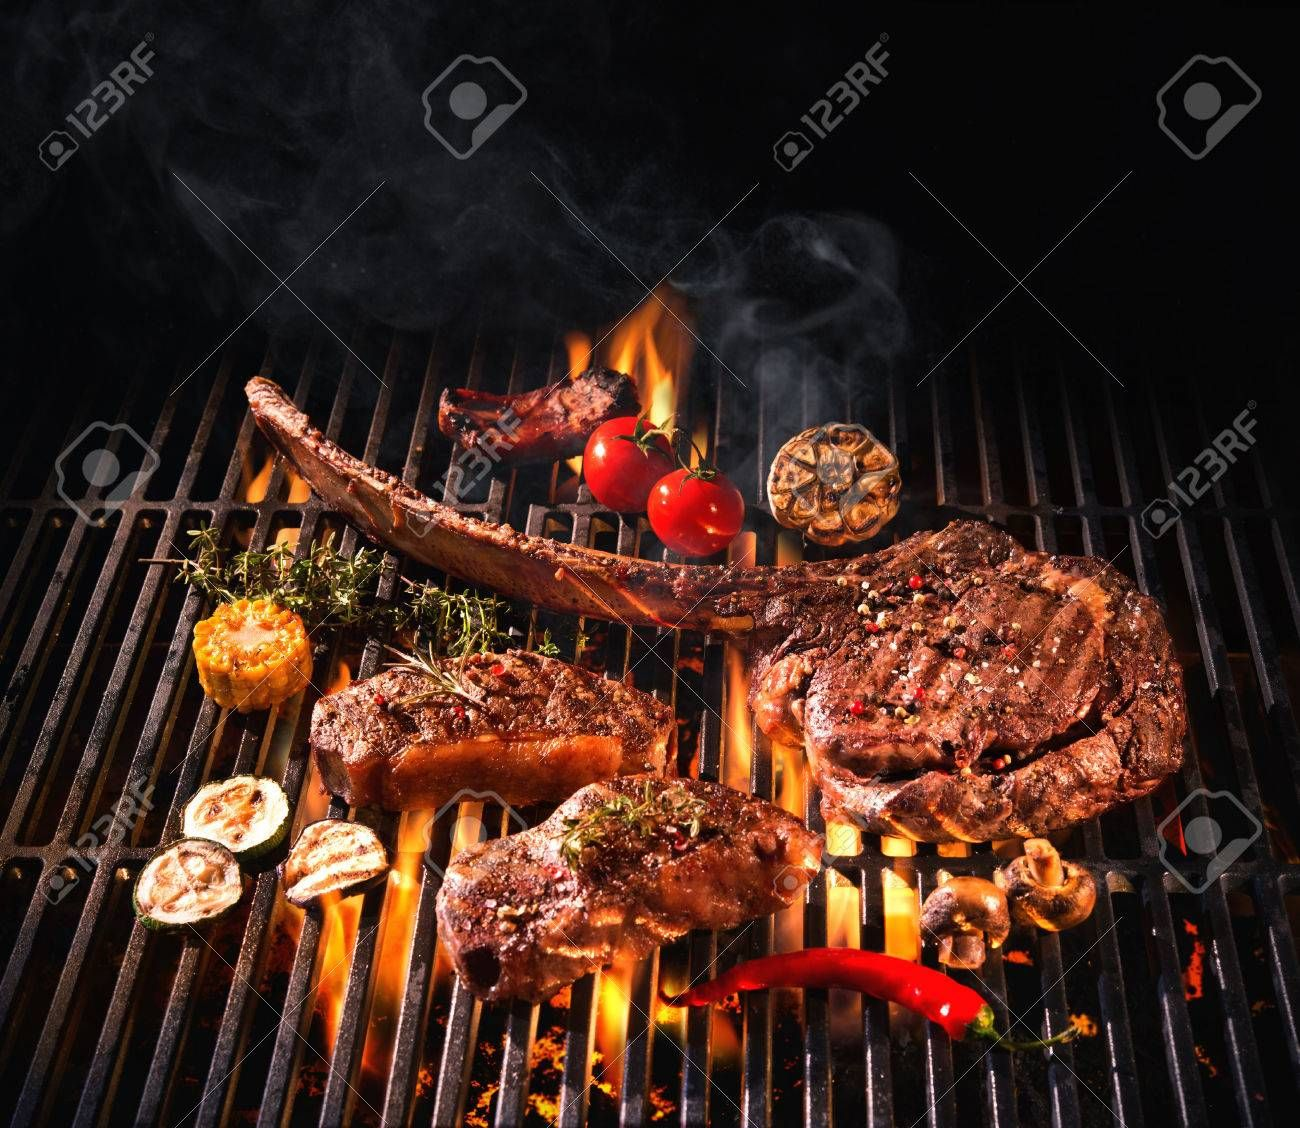 Beef steaks on the grill with flames , #AFF, #steaks, #Beef, #flames, #grill